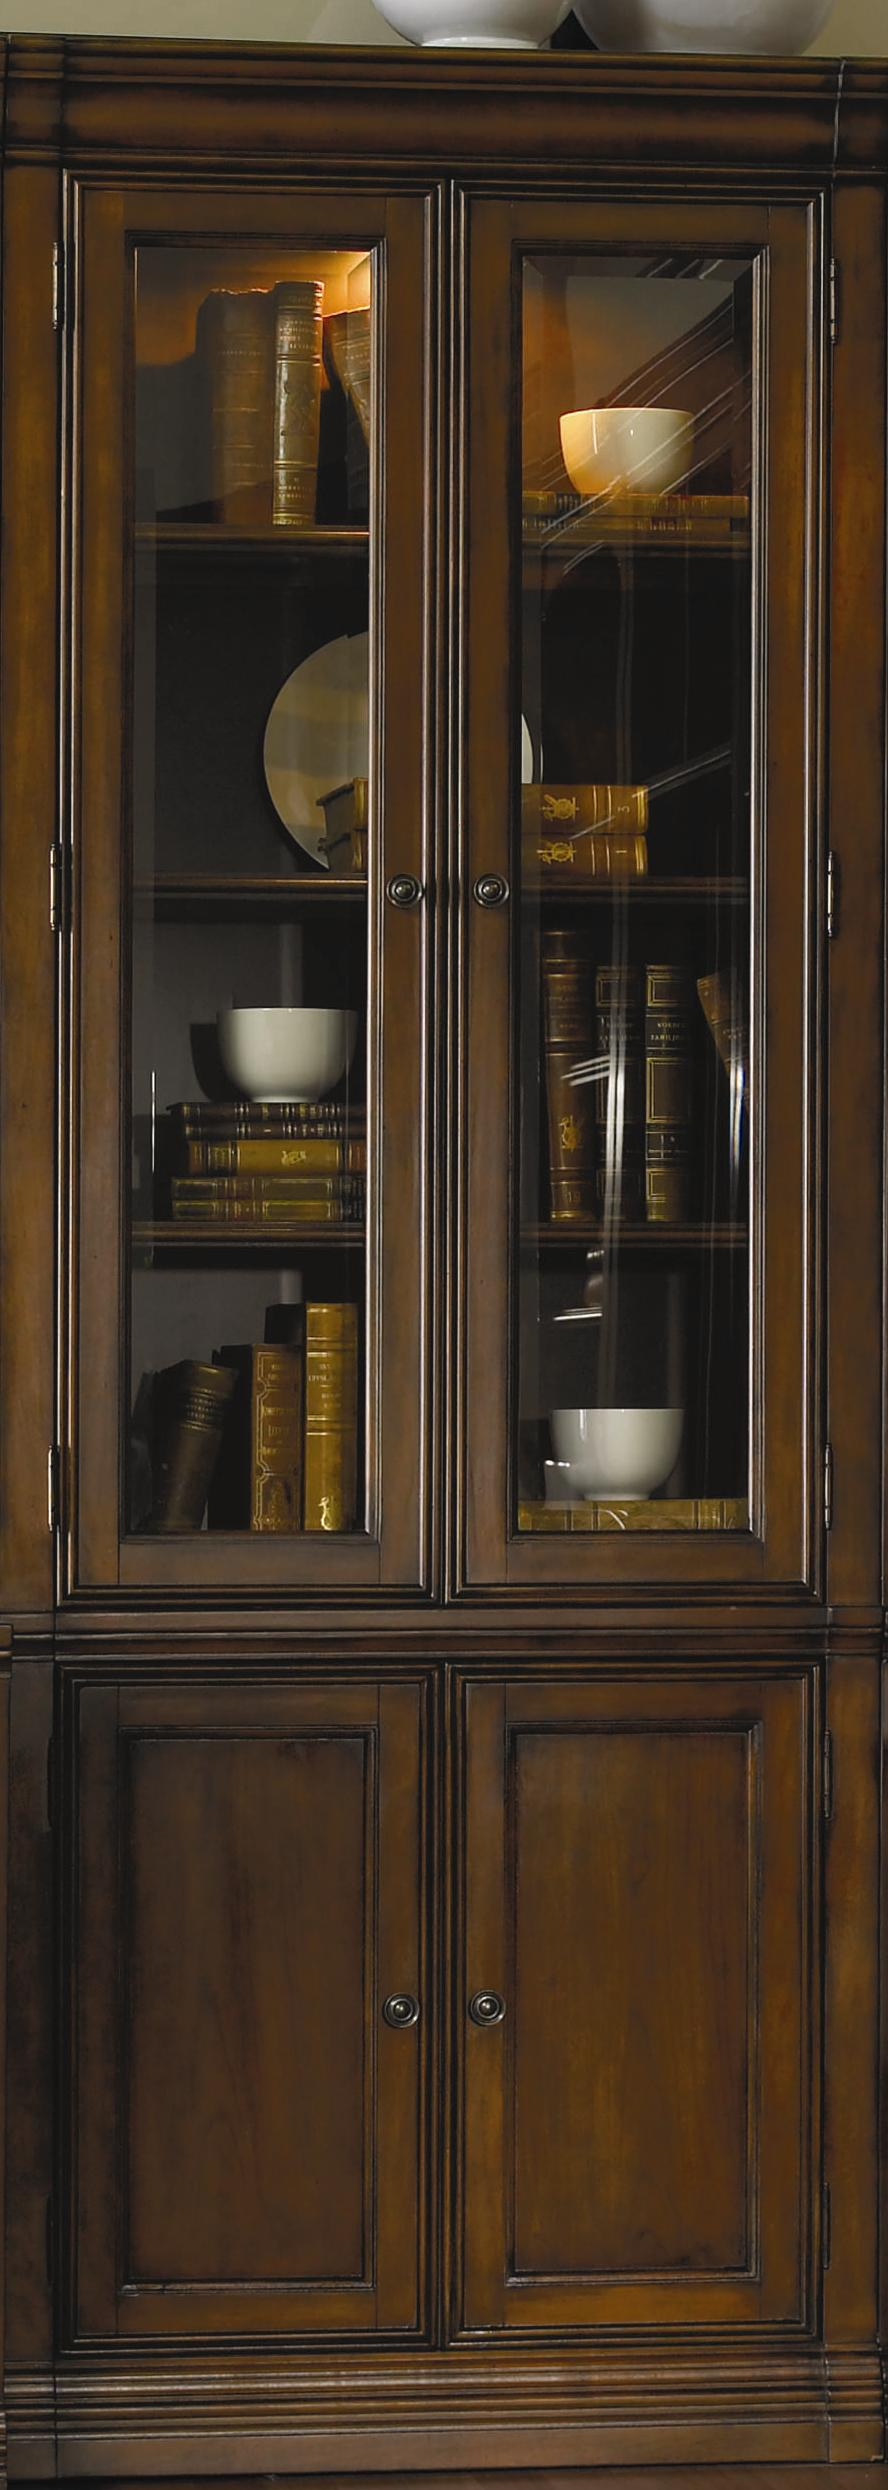 Hamilton Home Cherry Creek  Wall Curio Cabinet - Item Number: 258-70-447